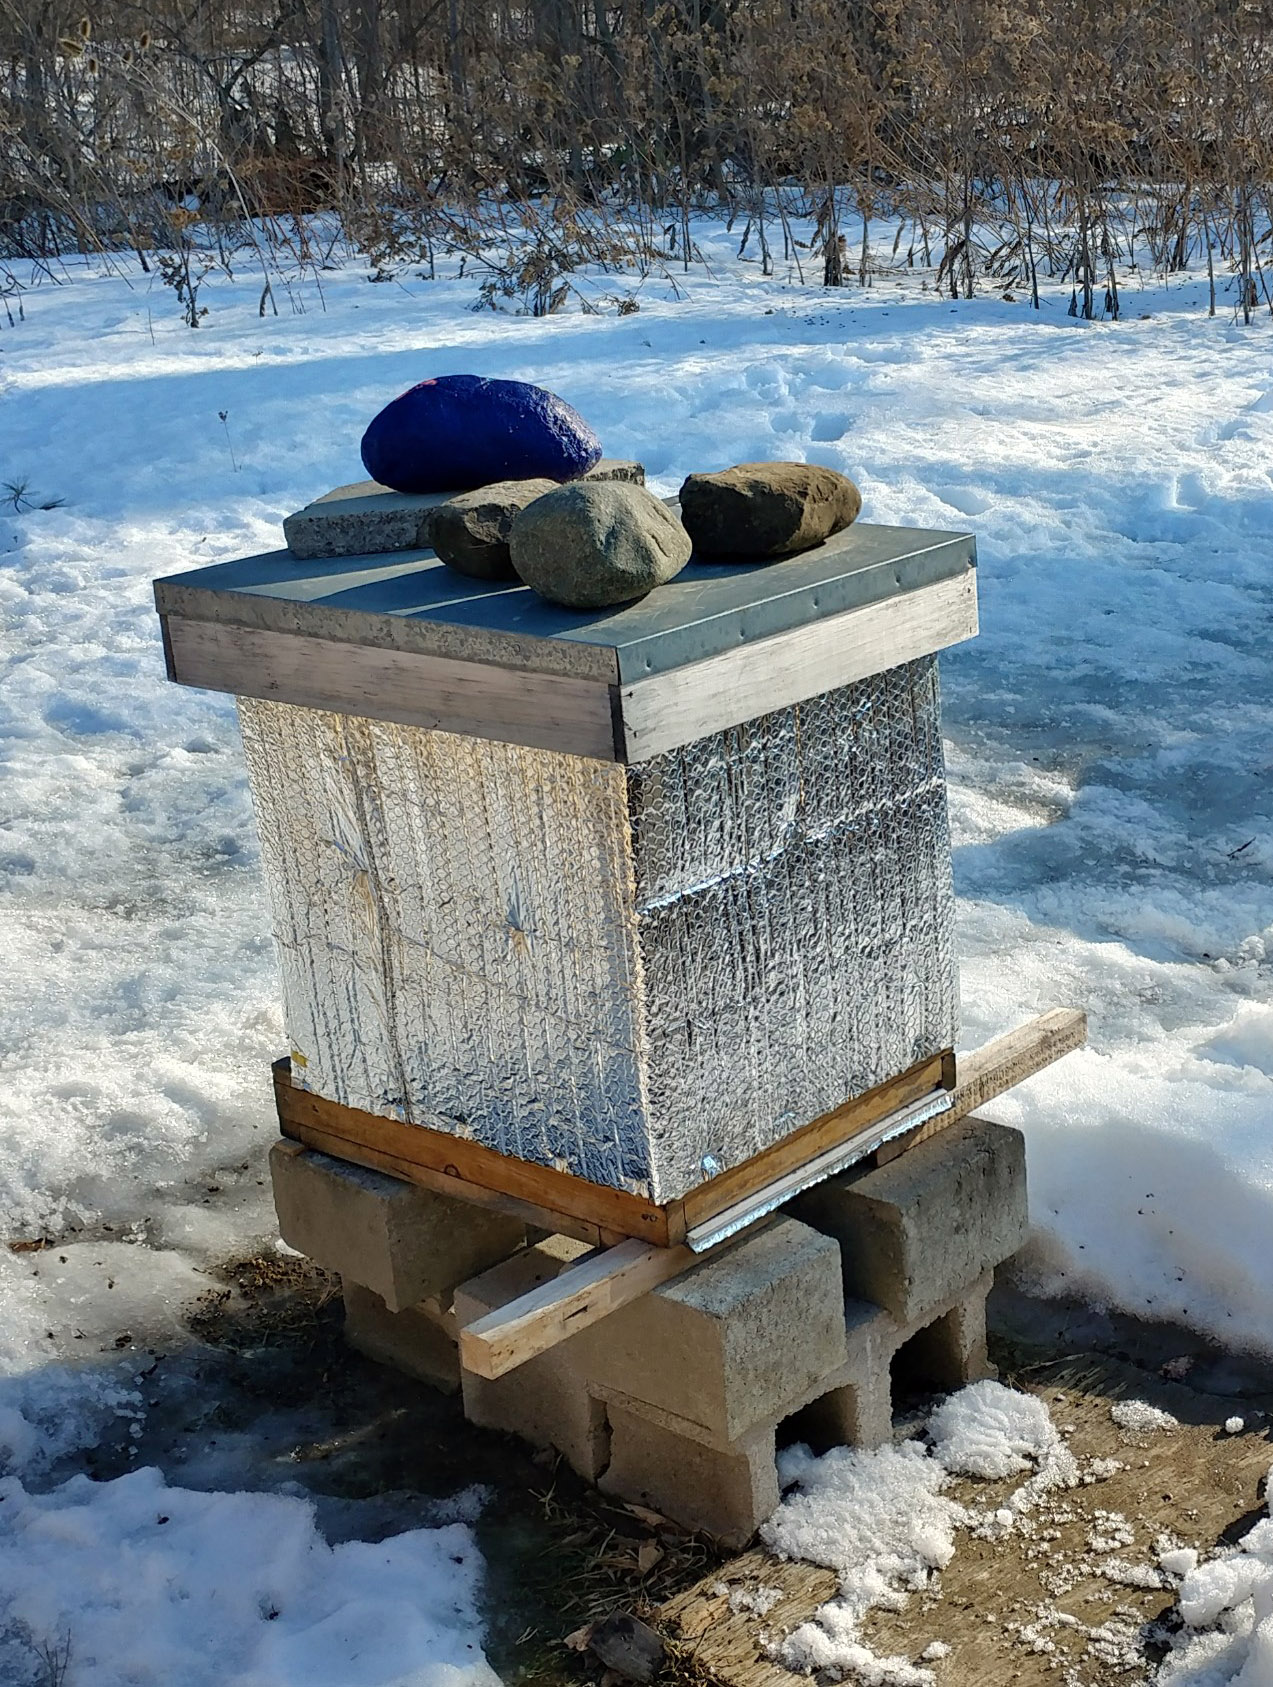 Hive in winter with snow around